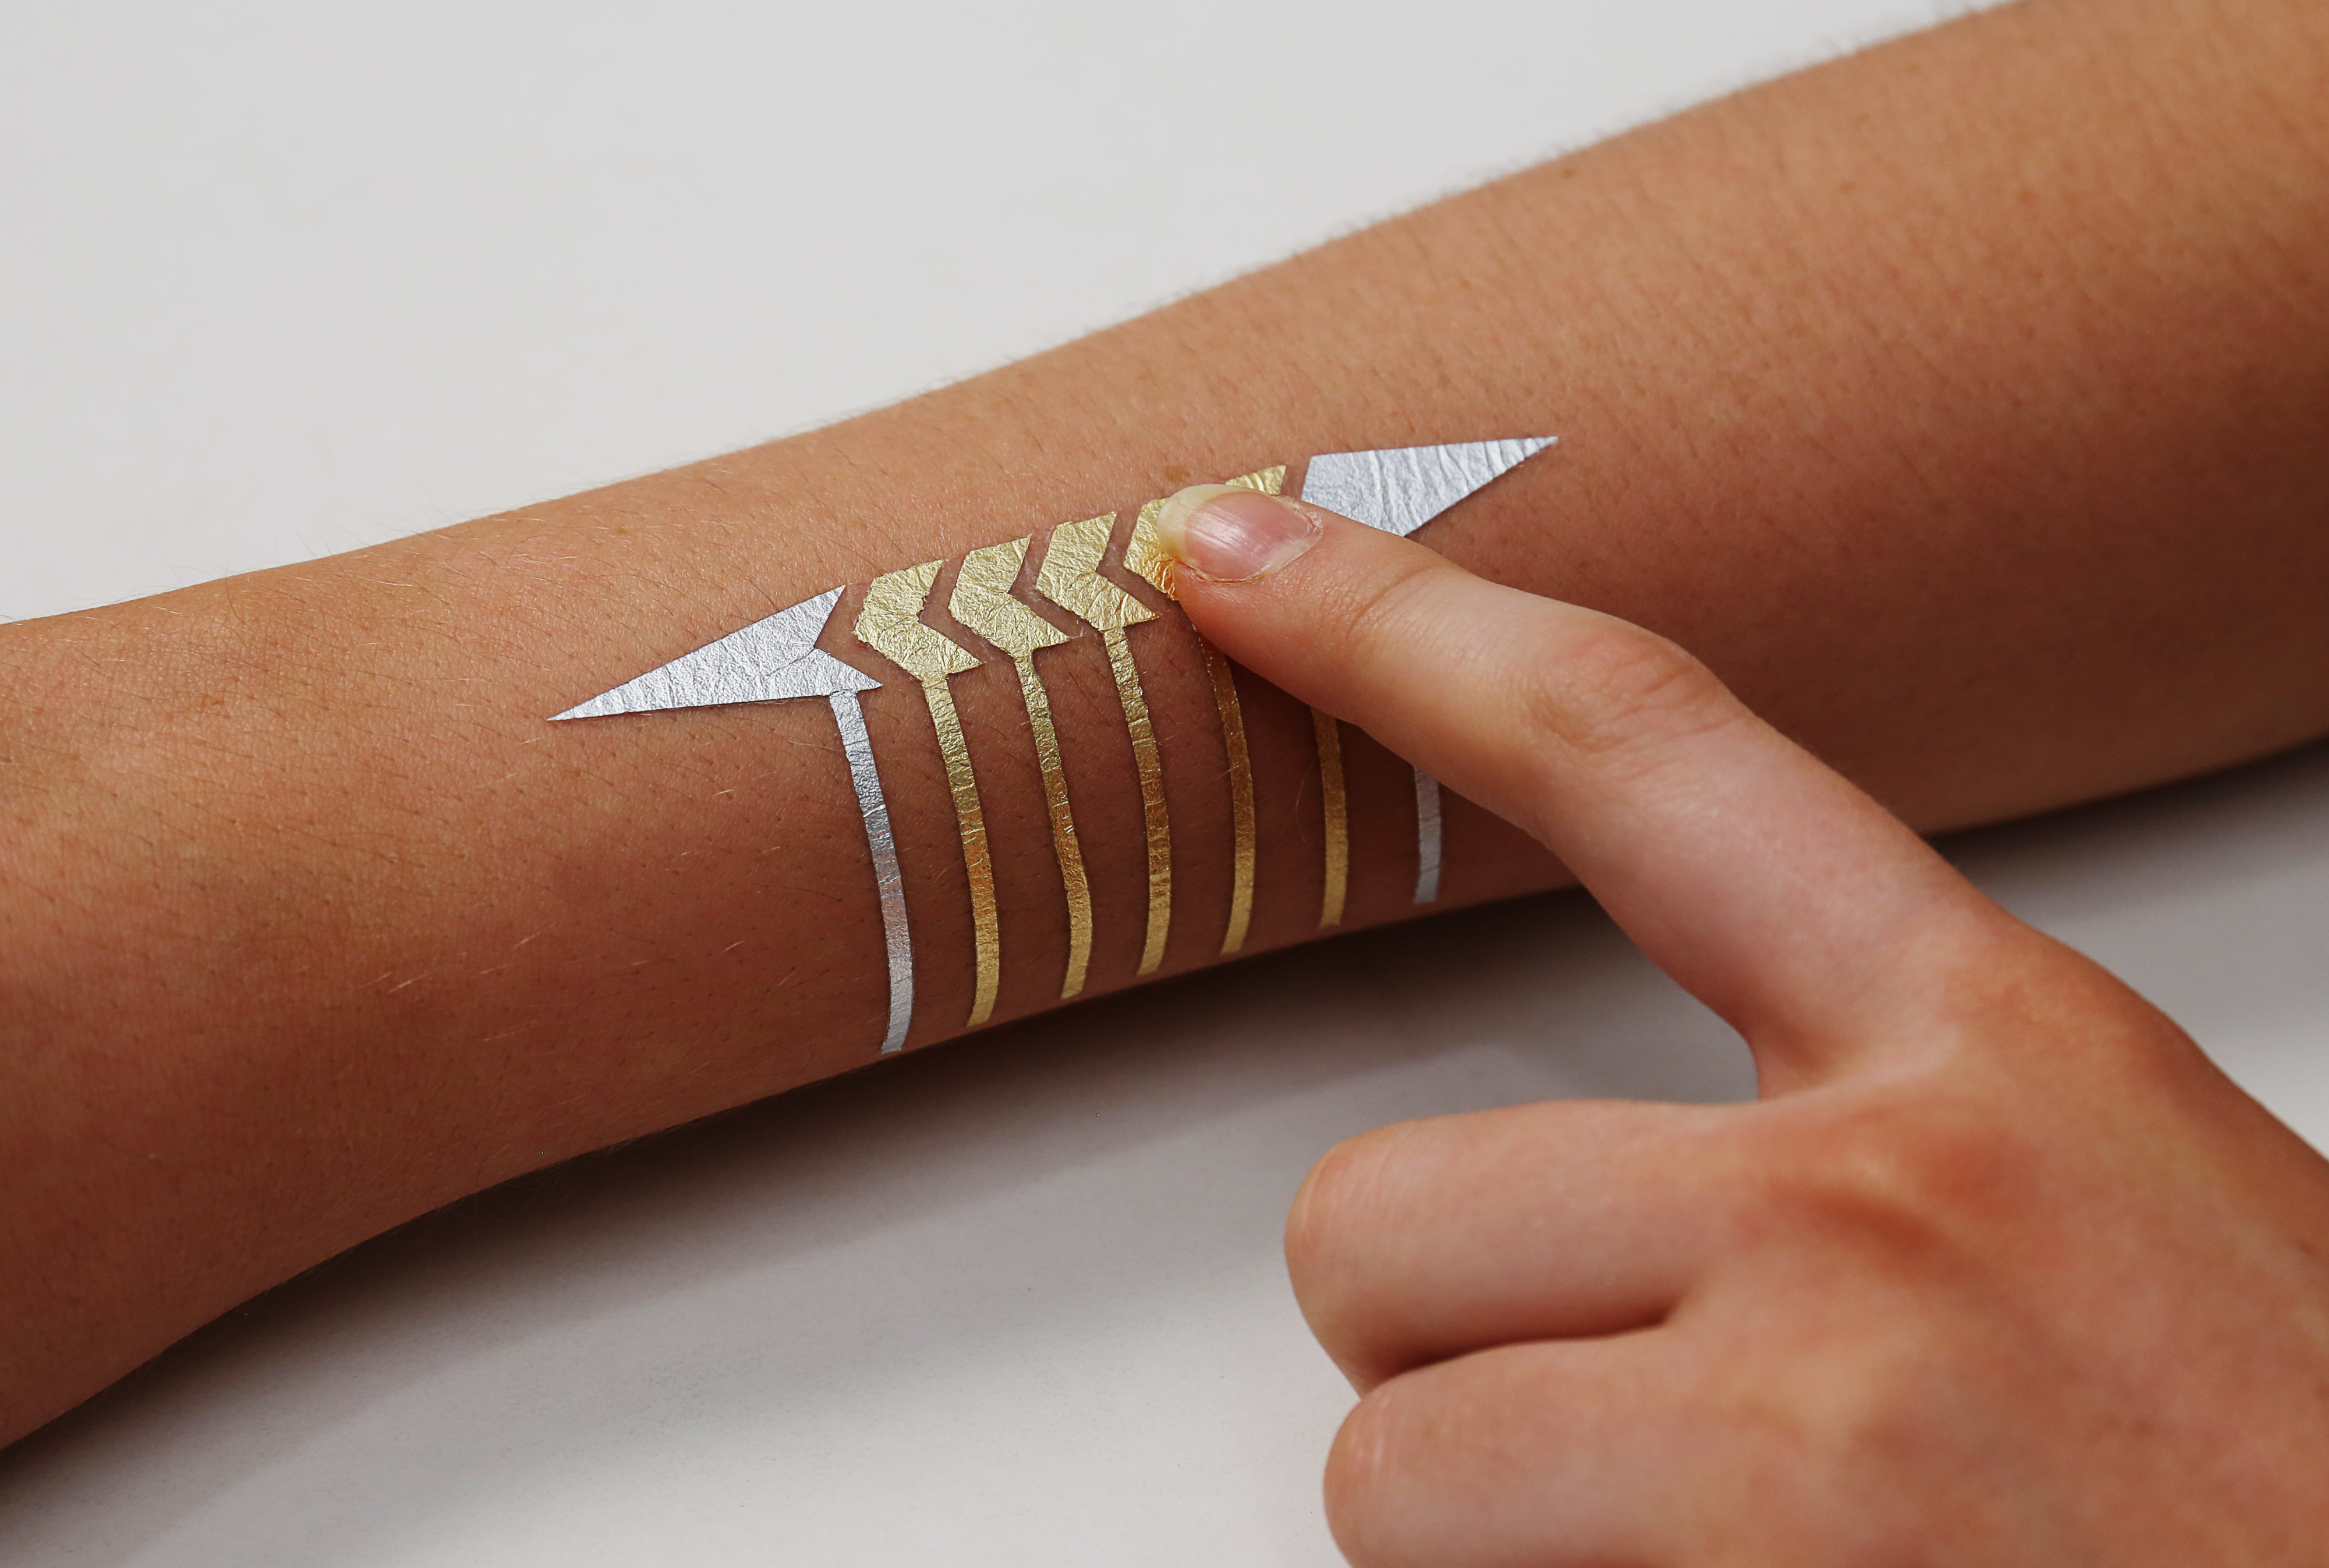 Microsoft Research and MIT unveil DuoSkin, the latest in smart tattoos